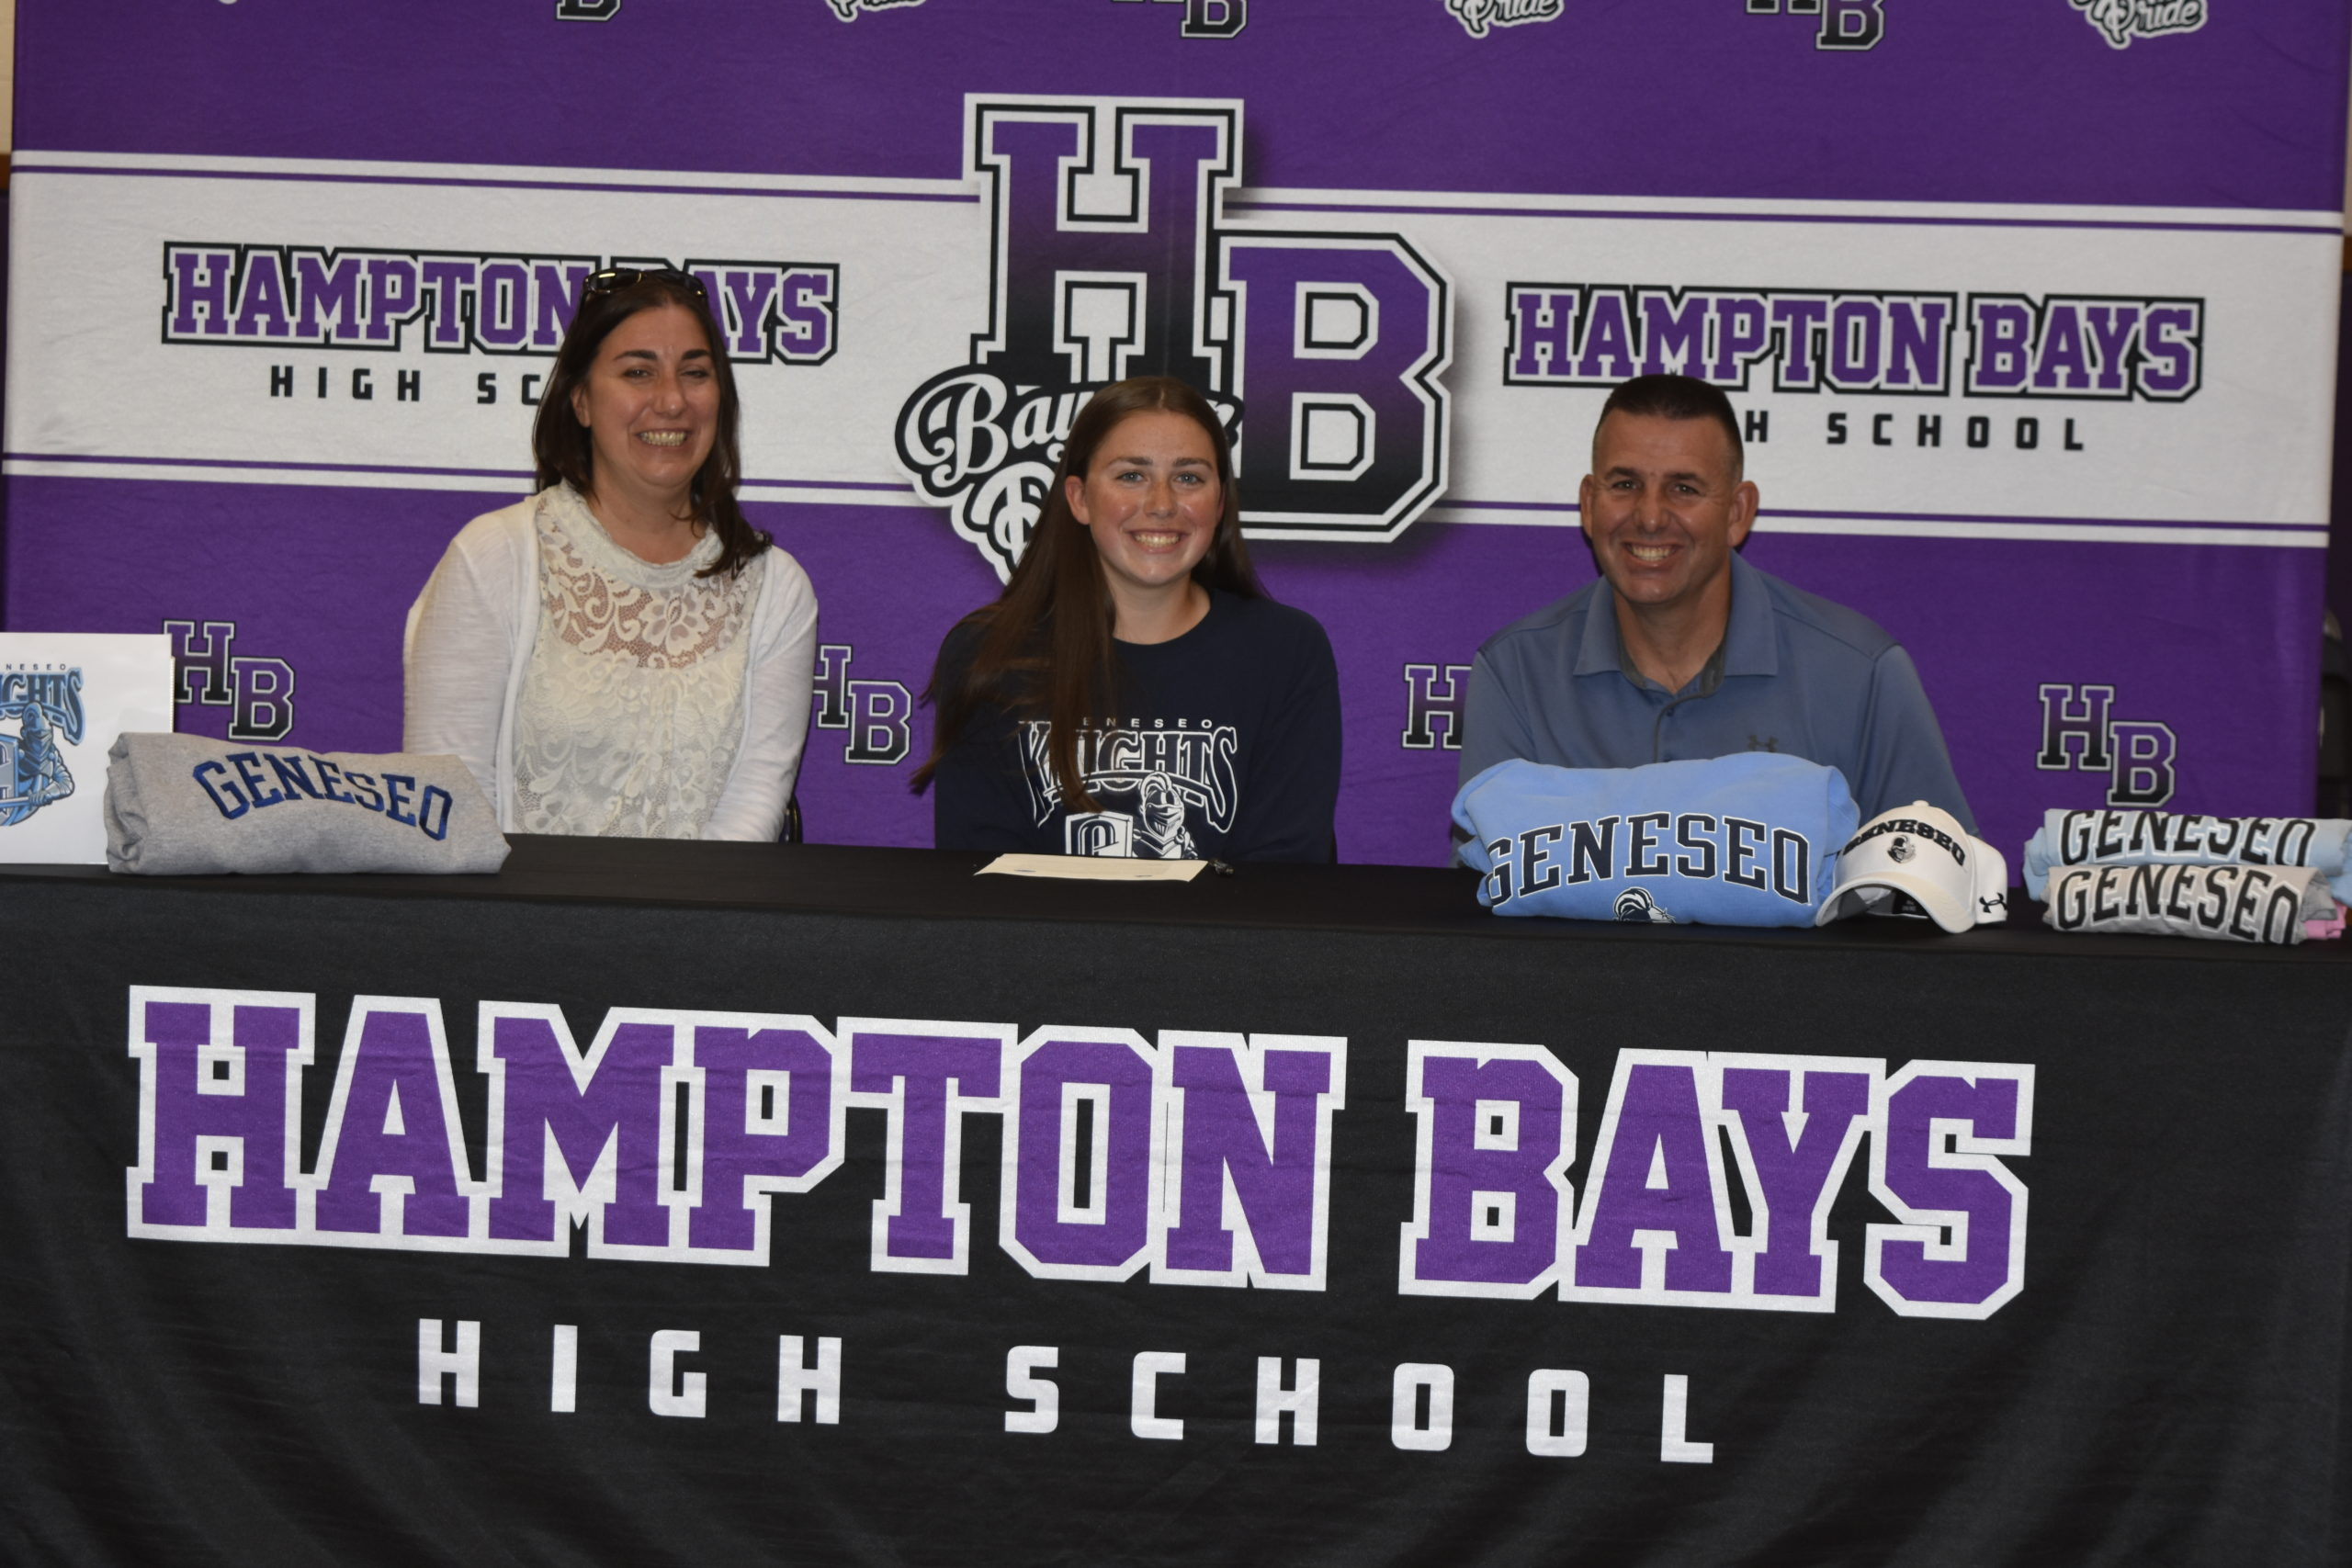 Tara Brochu with her parents, Paul and Tara, signing her letter of intent to play softball at SUNY Geneseo on June 1.